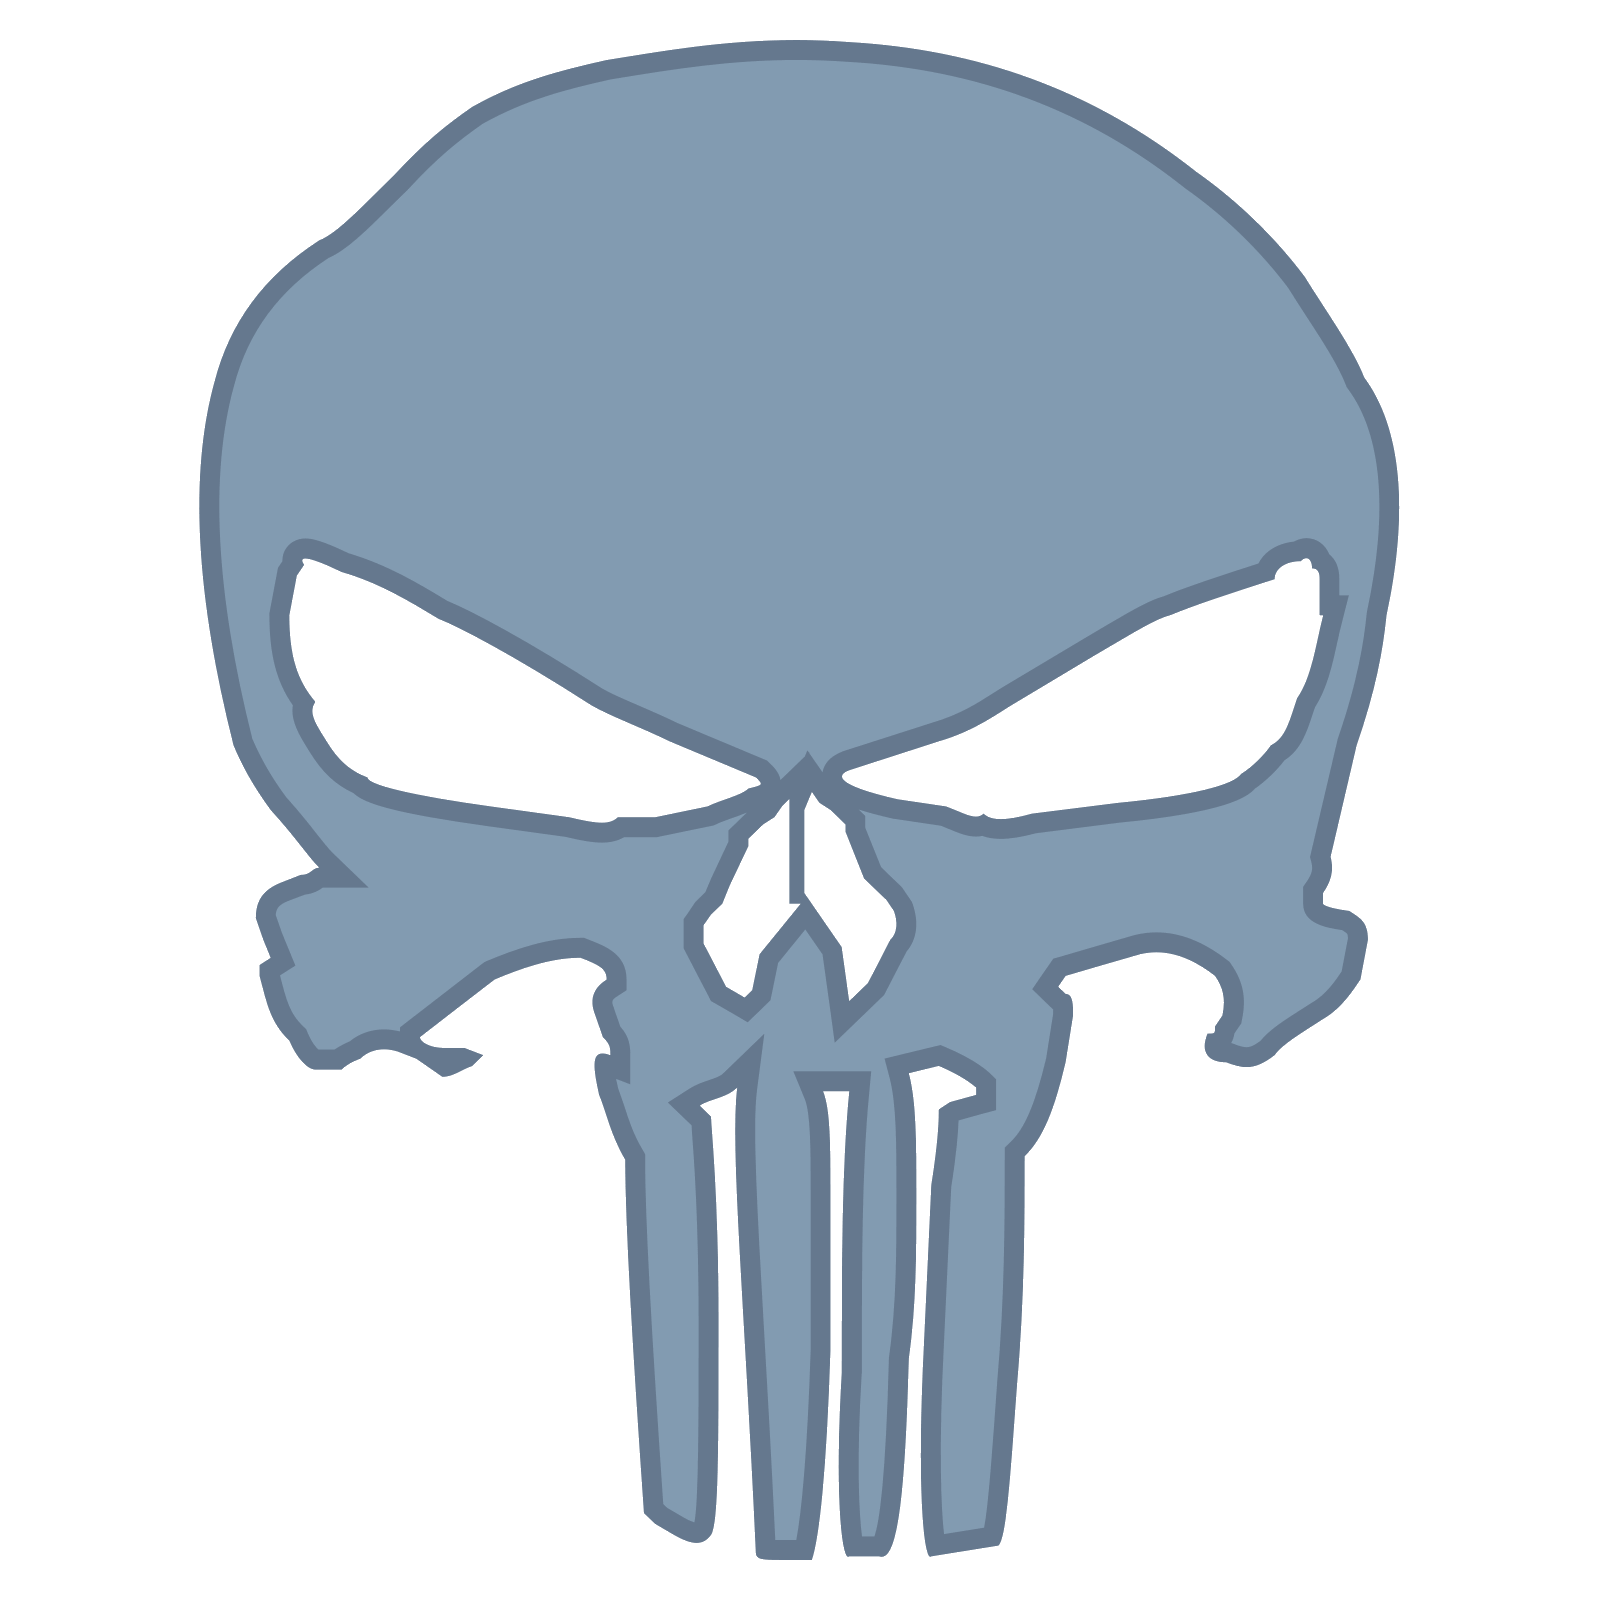 American vector punisher. Icono descarga gratuita png